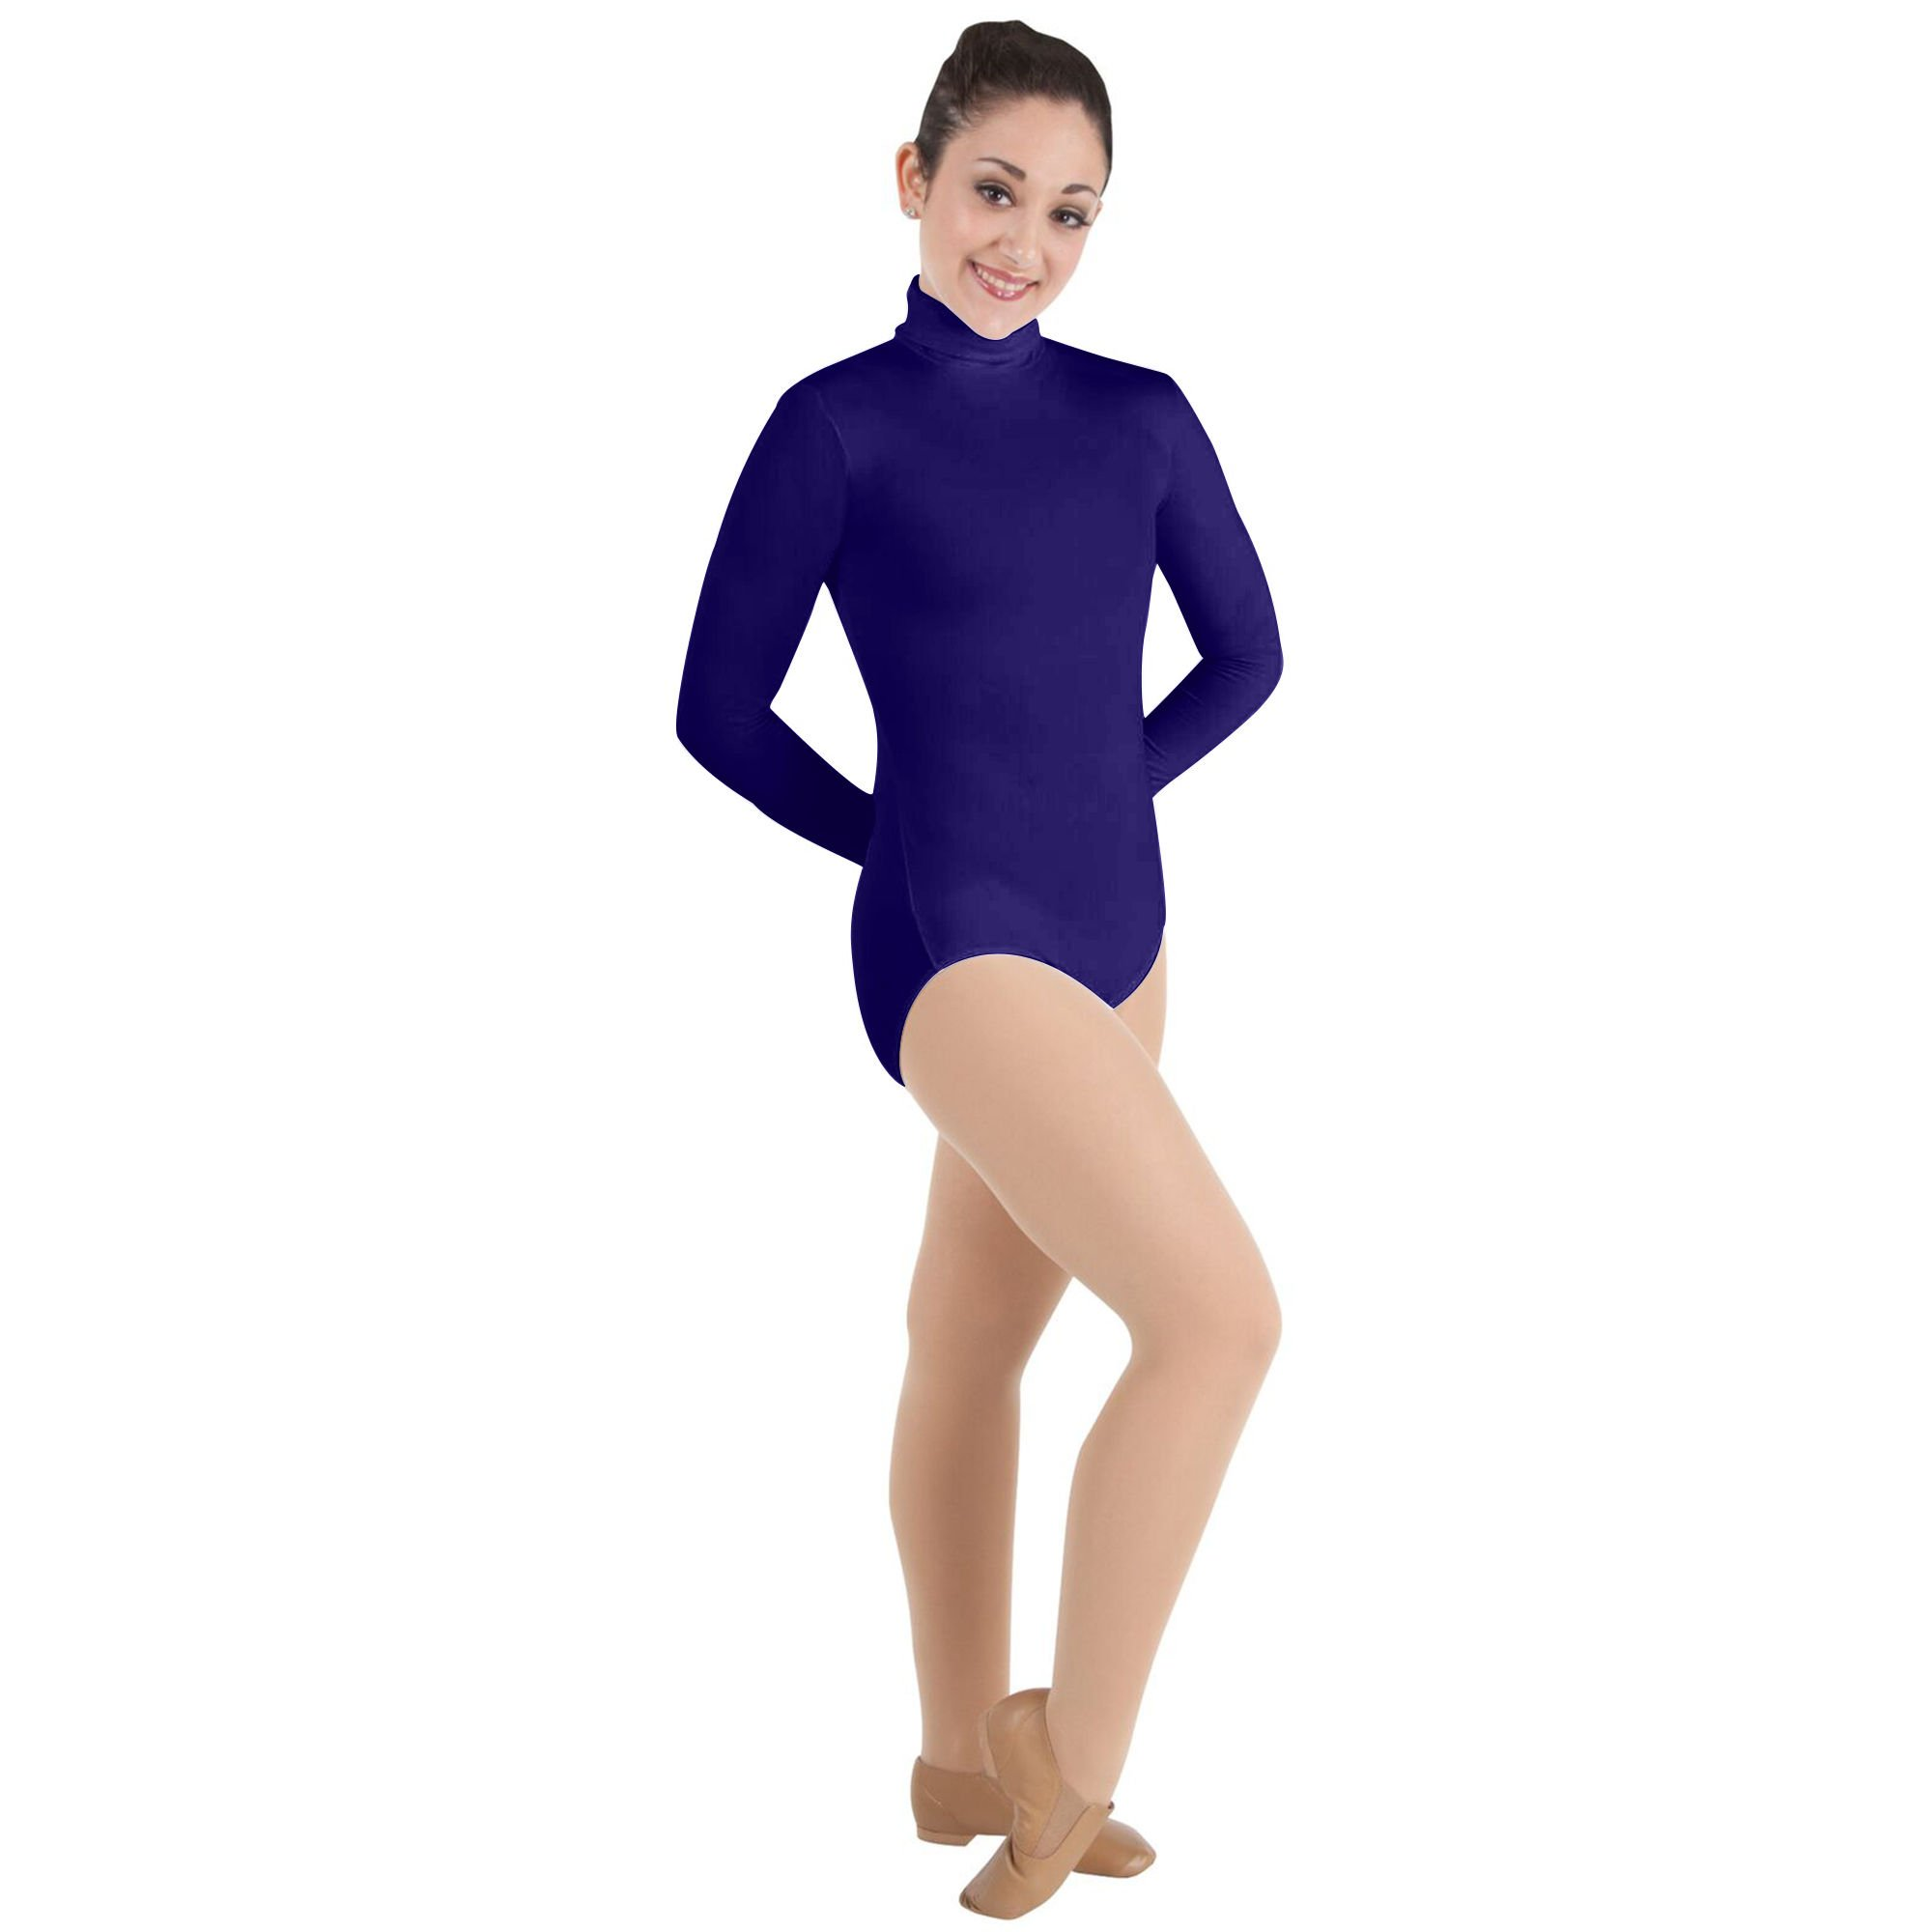 Body Wrappers Adult ProWEAR Zip Back Mock Turtleneck Leotard